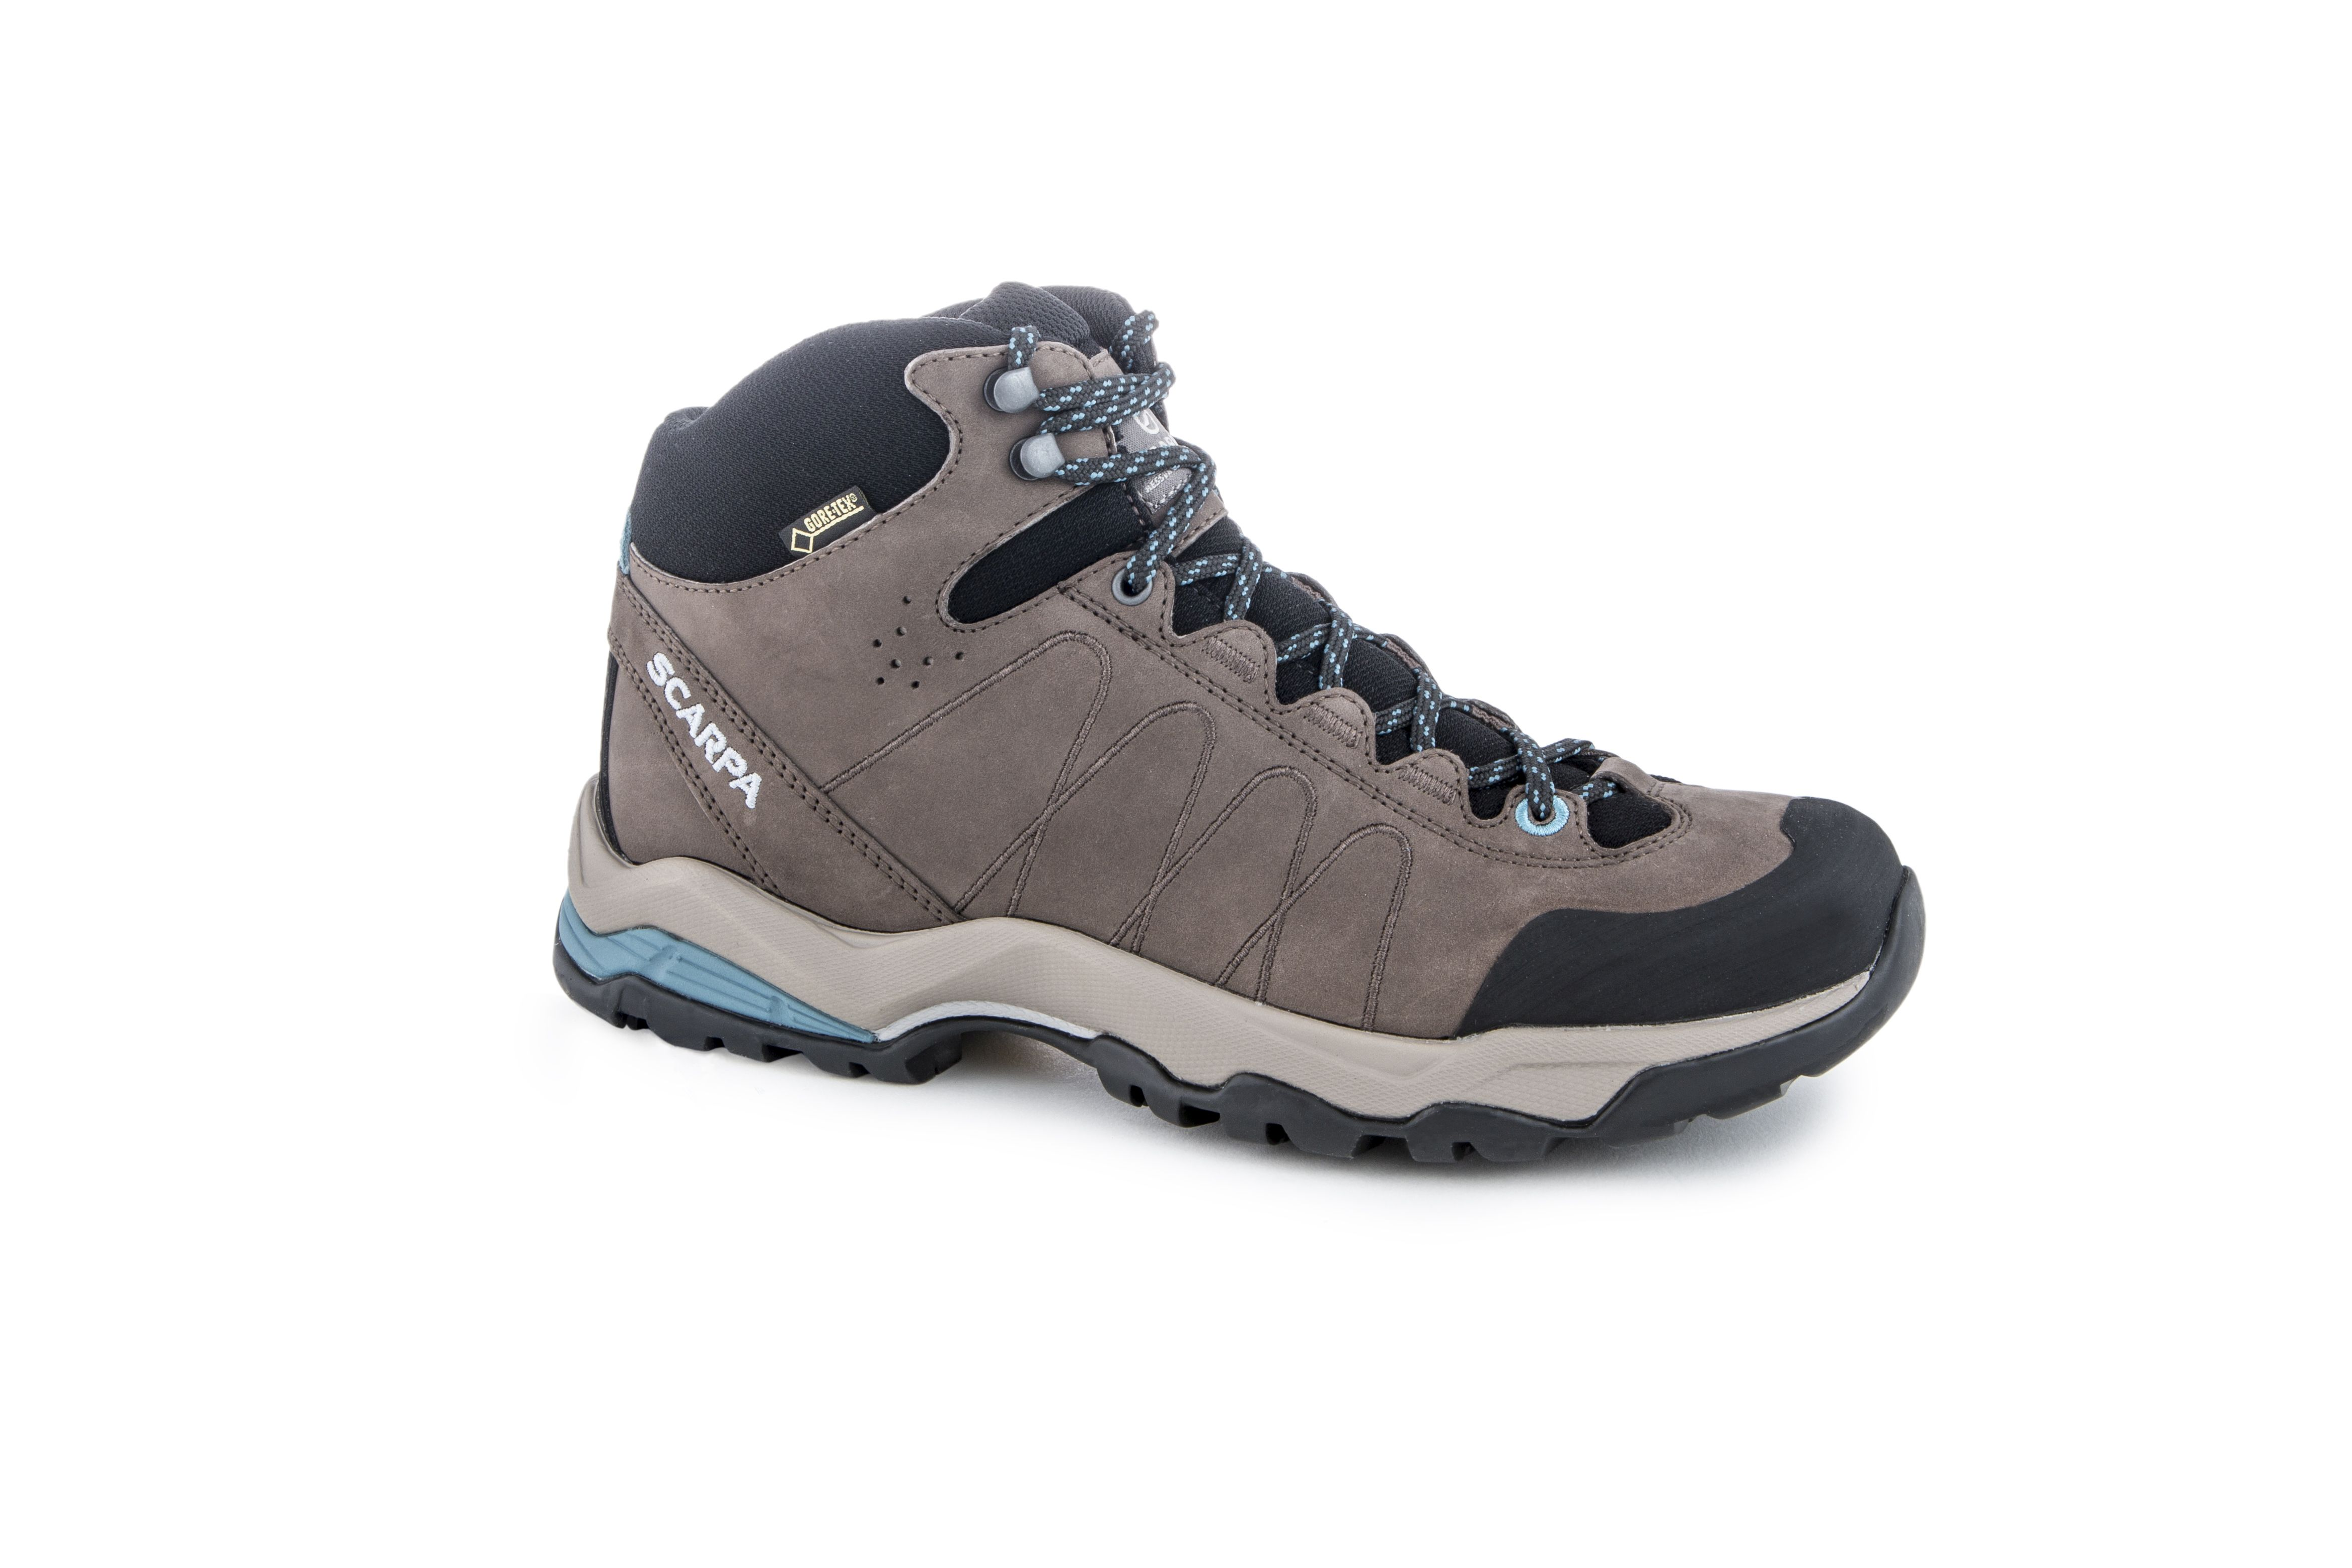 Scarpa Moraine Plus Mid GTX Wmn Charcoal/Air-30